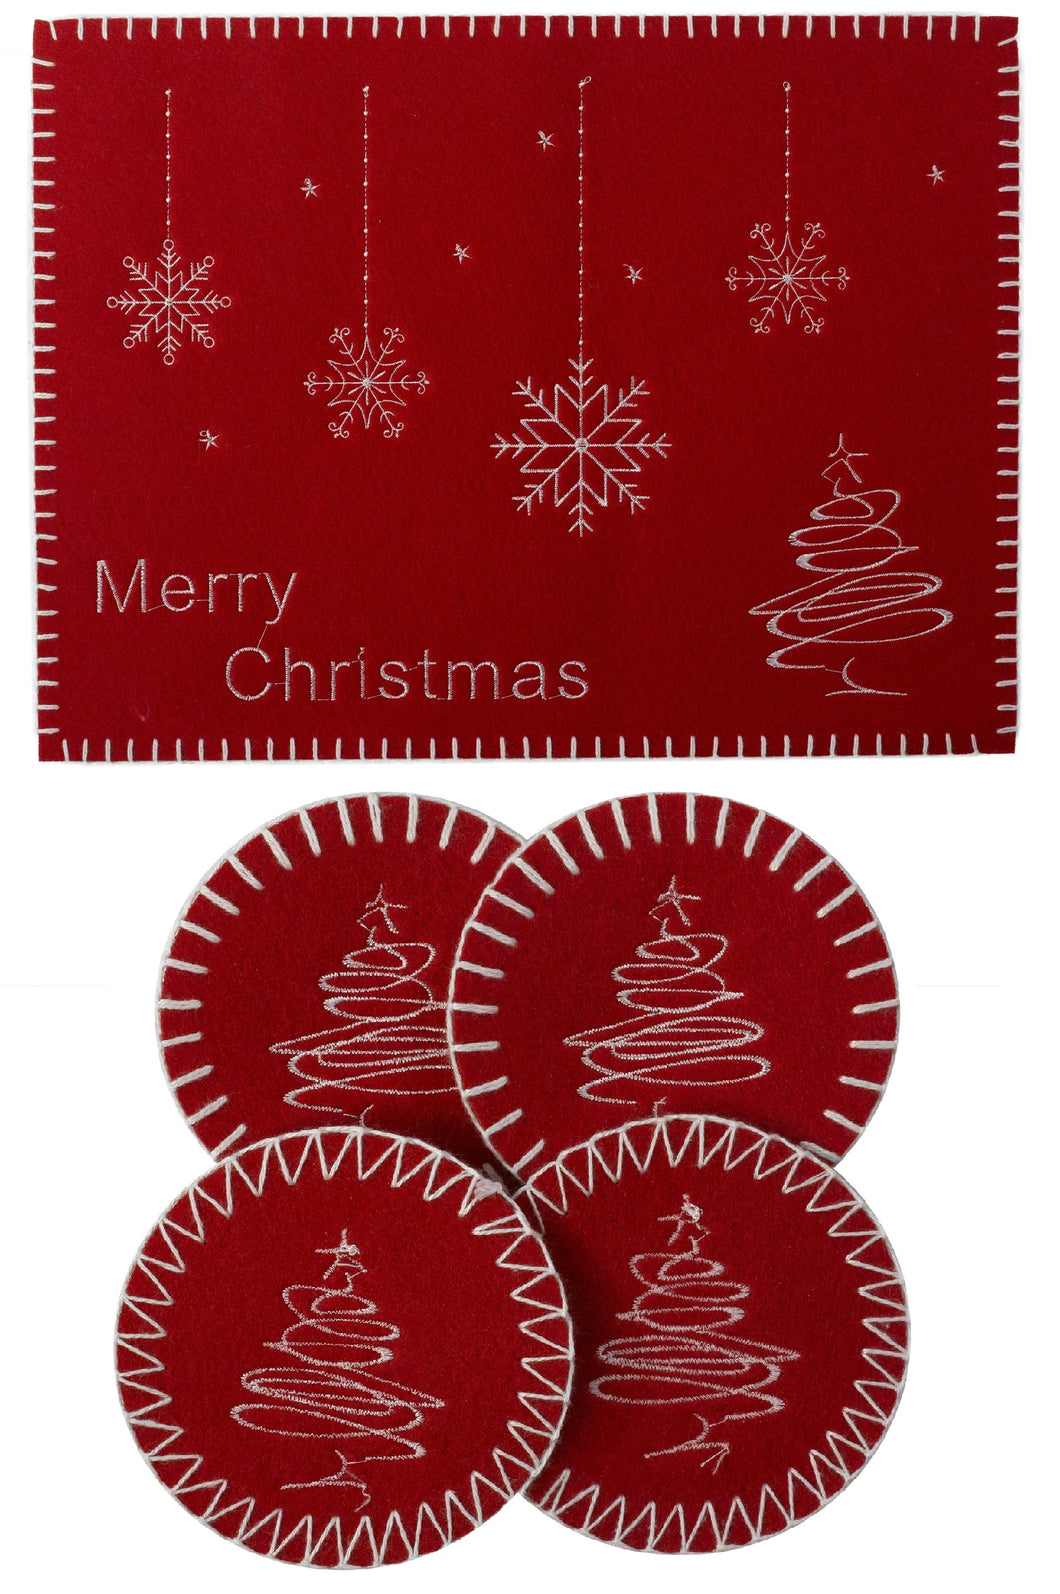 http://images.esellerpro.com/2278/I/122/507/merry-christmas-xmas-festive-placemat-table-mat-linen-coasters-red-white-group-image.jpg